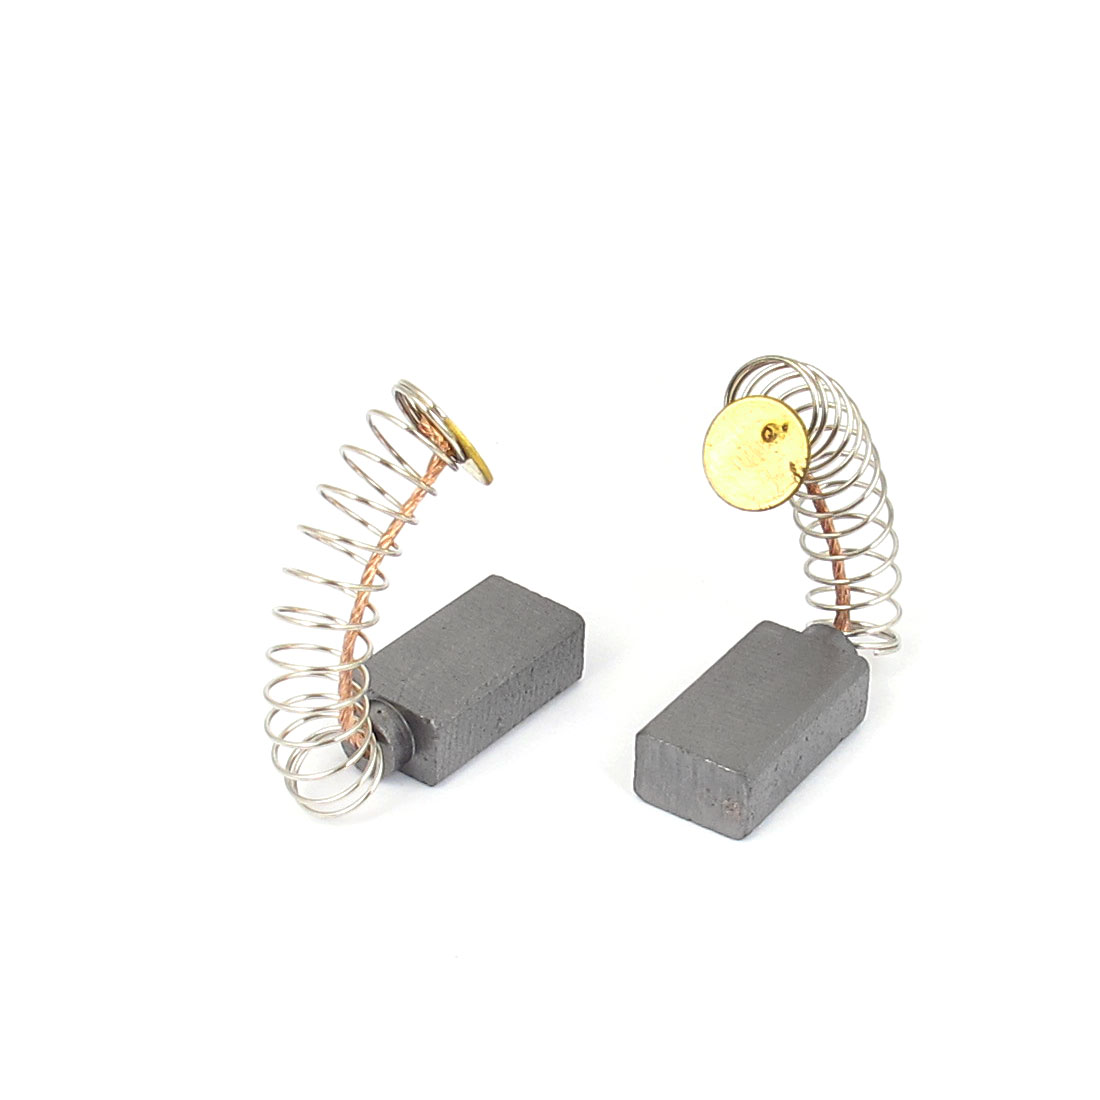 2PCS 14mmx8mmx5mm Spring Type Carbon Brushes for Generic Electric Motor